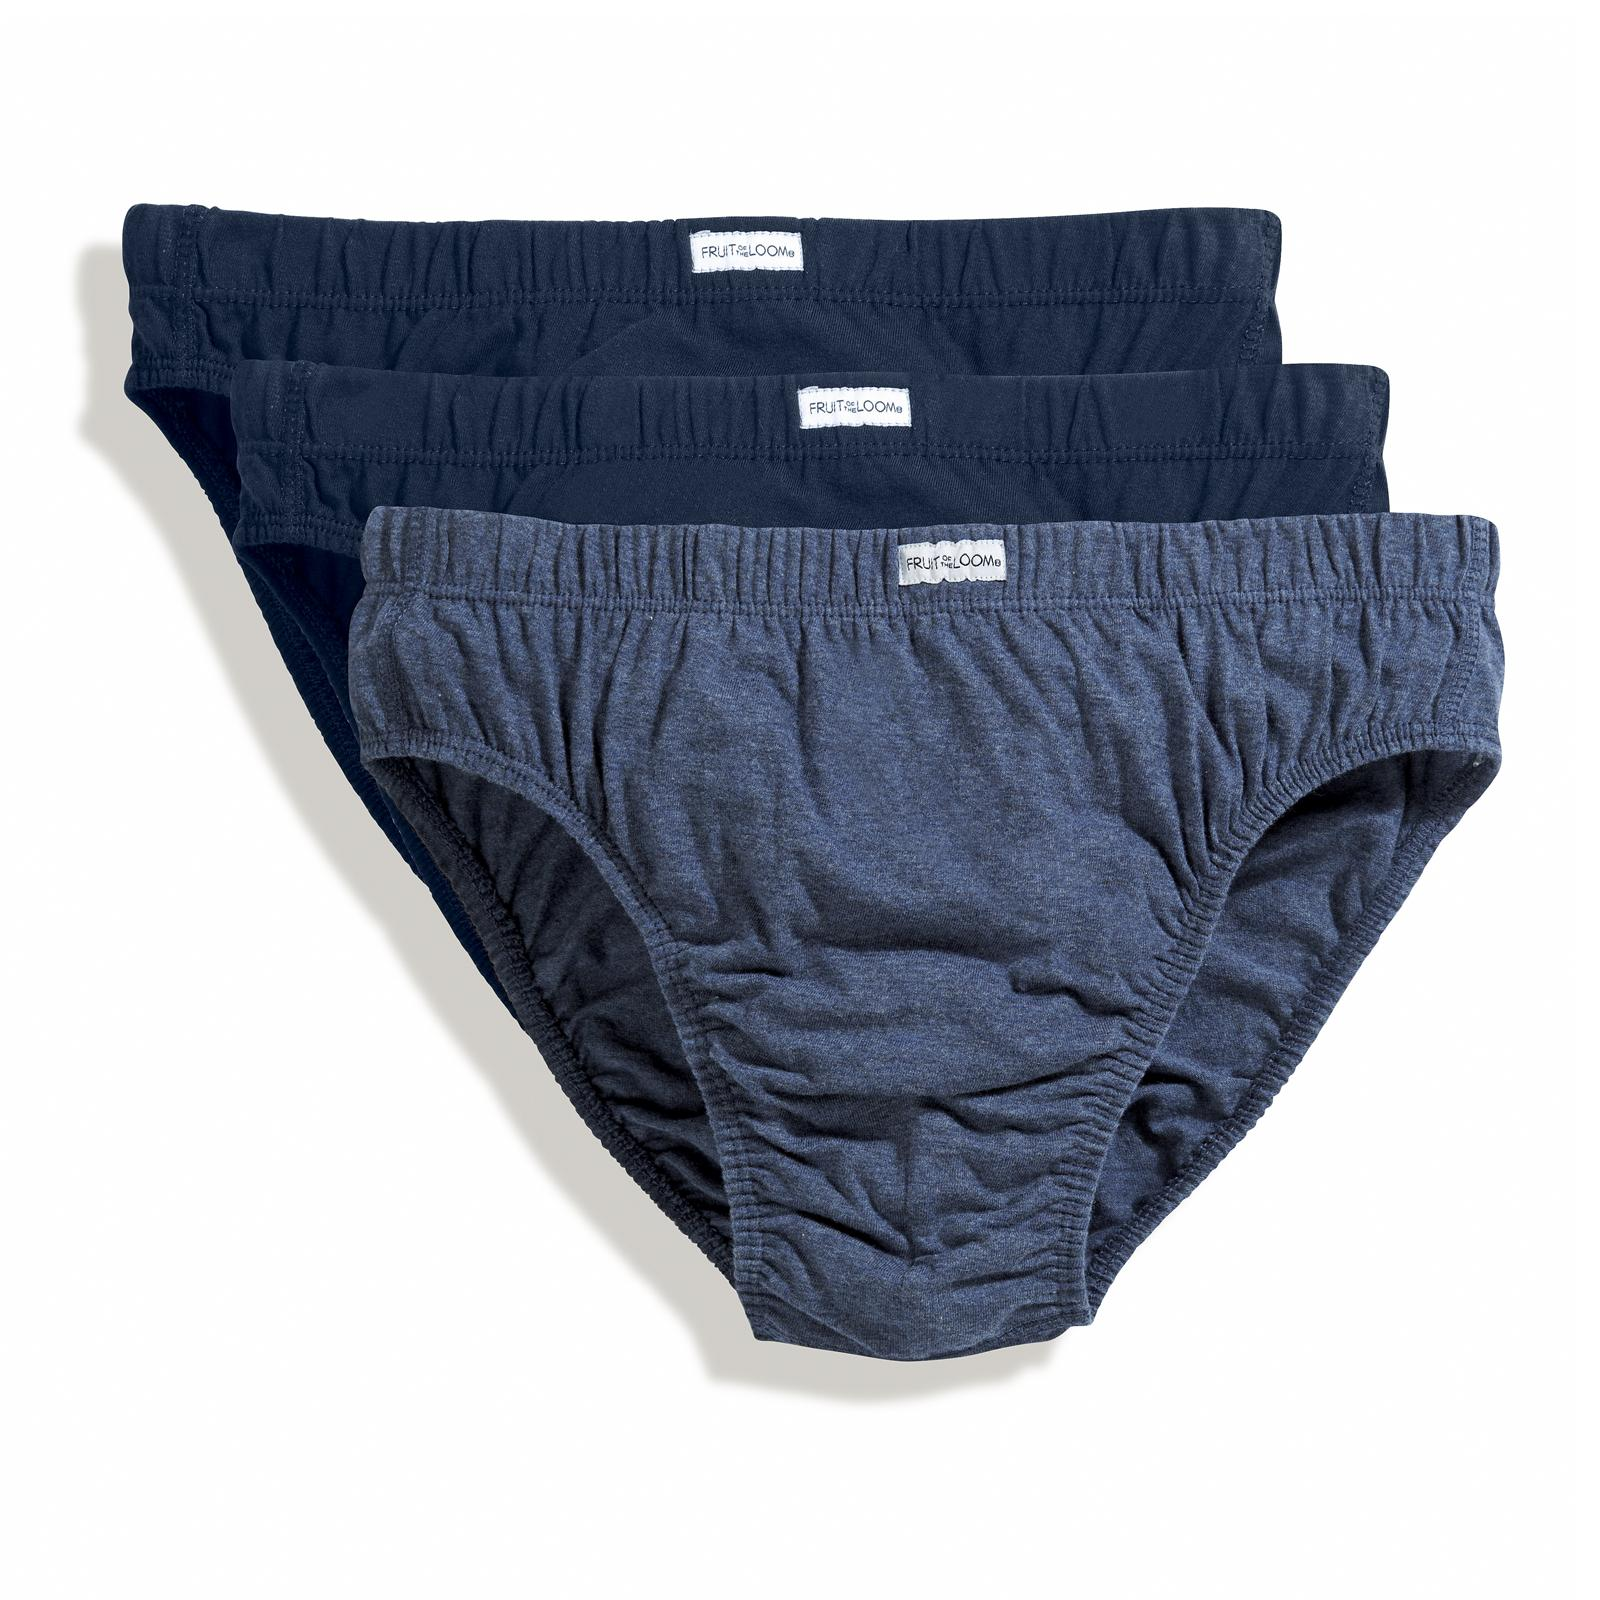 new fruit of the loom mens classic cotton slip underwear 3 pack 4 colour sets ebay. Black Bedroom Furniture Sets. Home Design Ideas